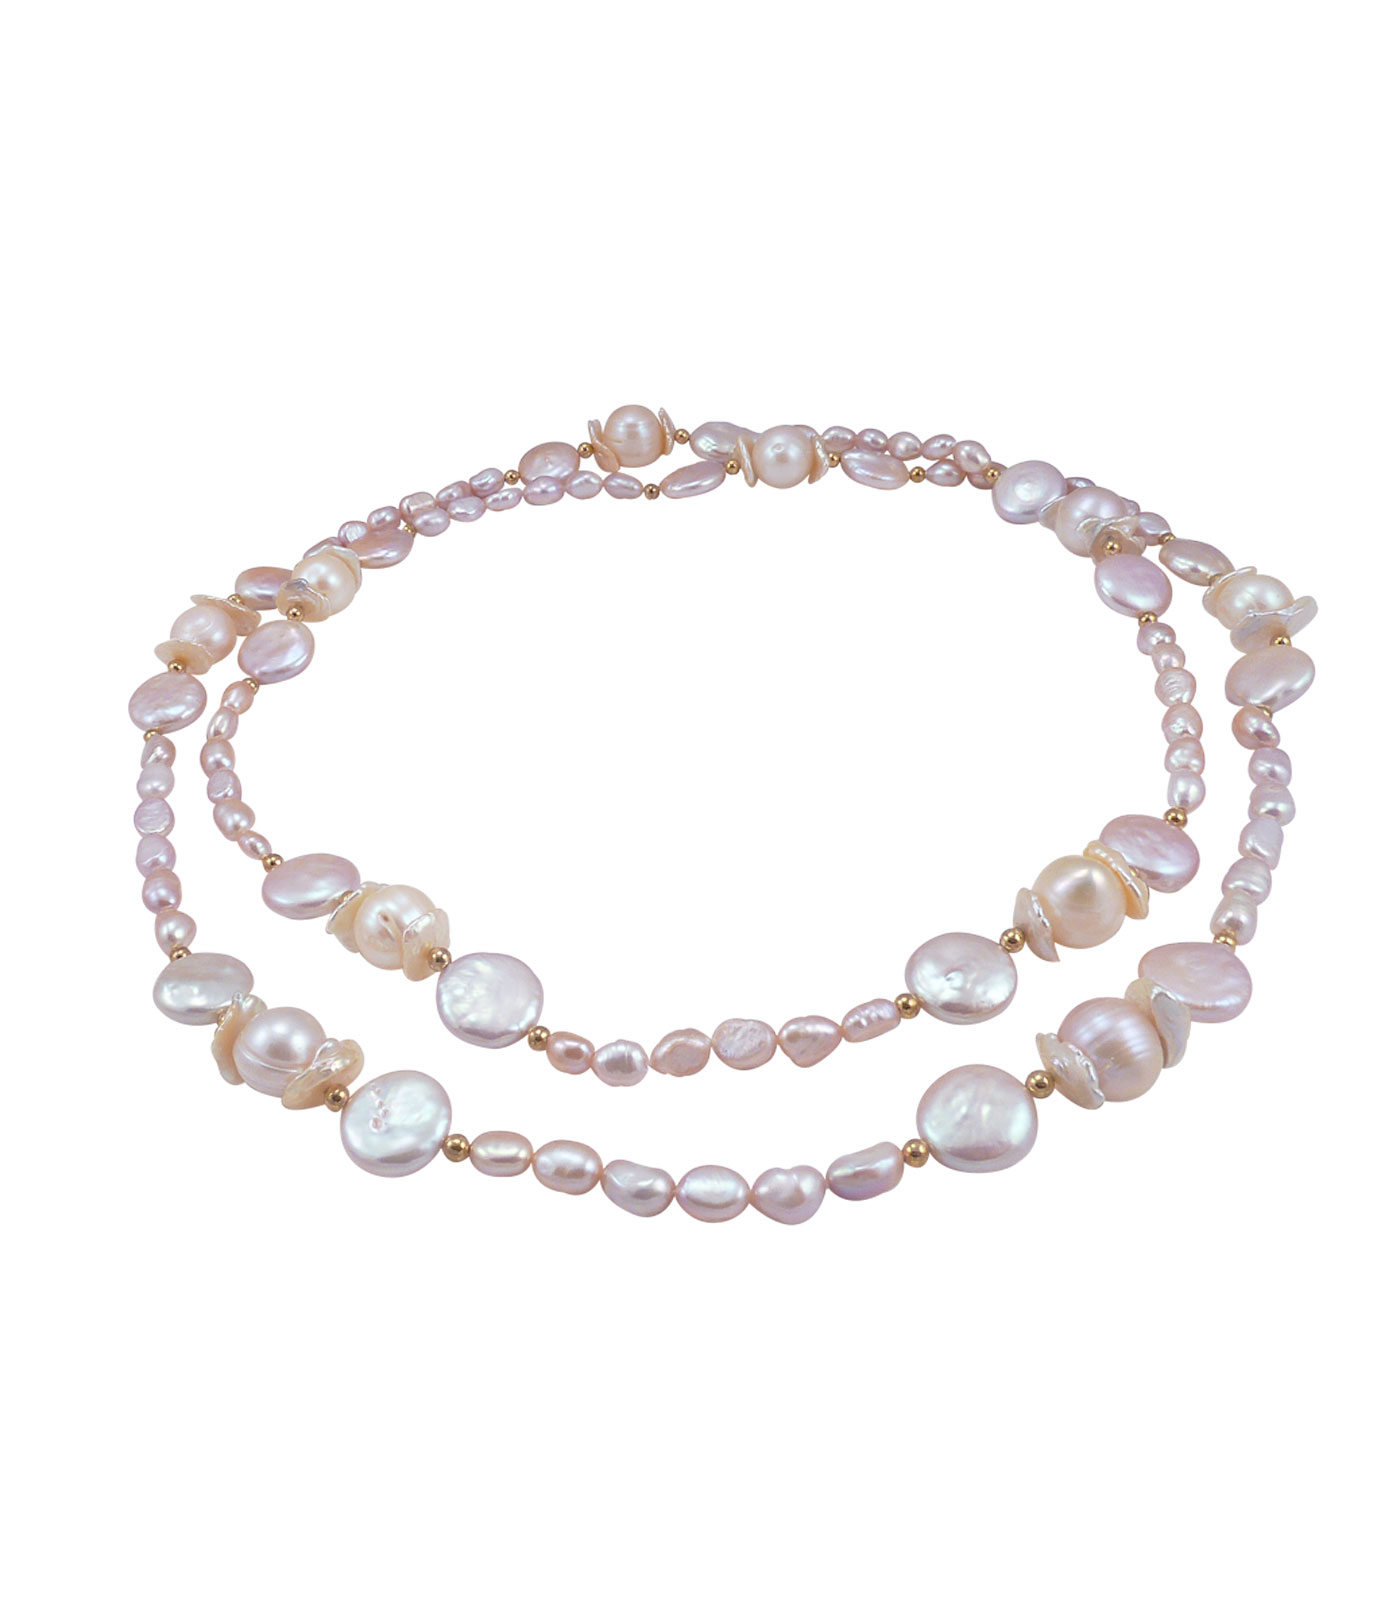 south natural jewellery necklace australia pearl view p quick aa mm strand huge sea white